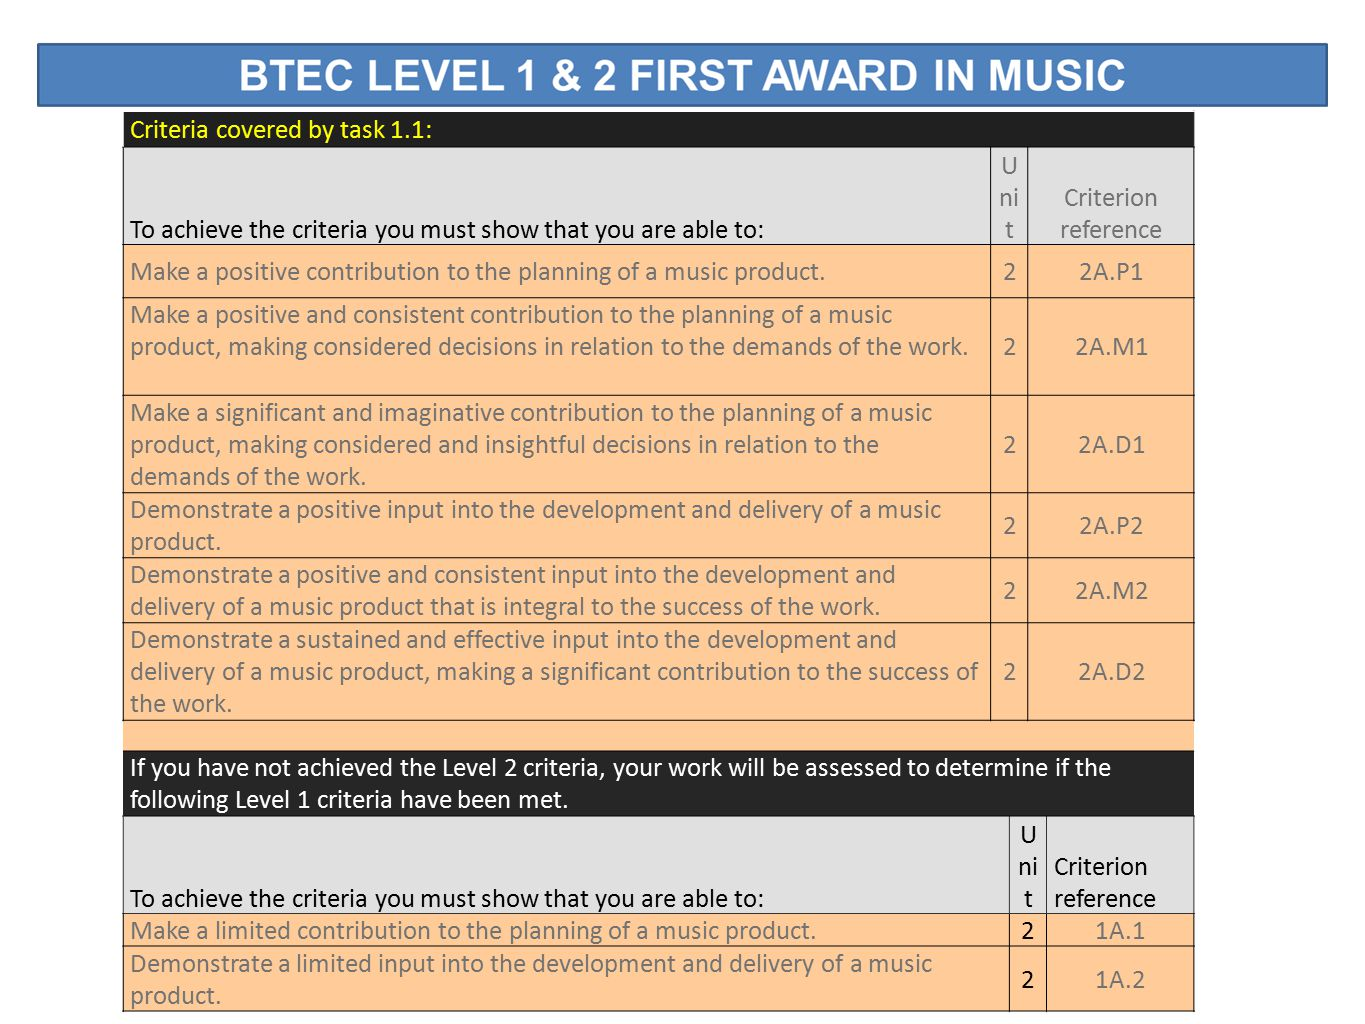 Criteria covered by task 1.1: To achieve the criteria you must show that you are able to: U ni t Criterion reference Make a positive contribution to the planning of a music product.22A.P1 Make a positive and consistent contribution to the planning of a music product, making considered decisions in relation to the demands of the work.